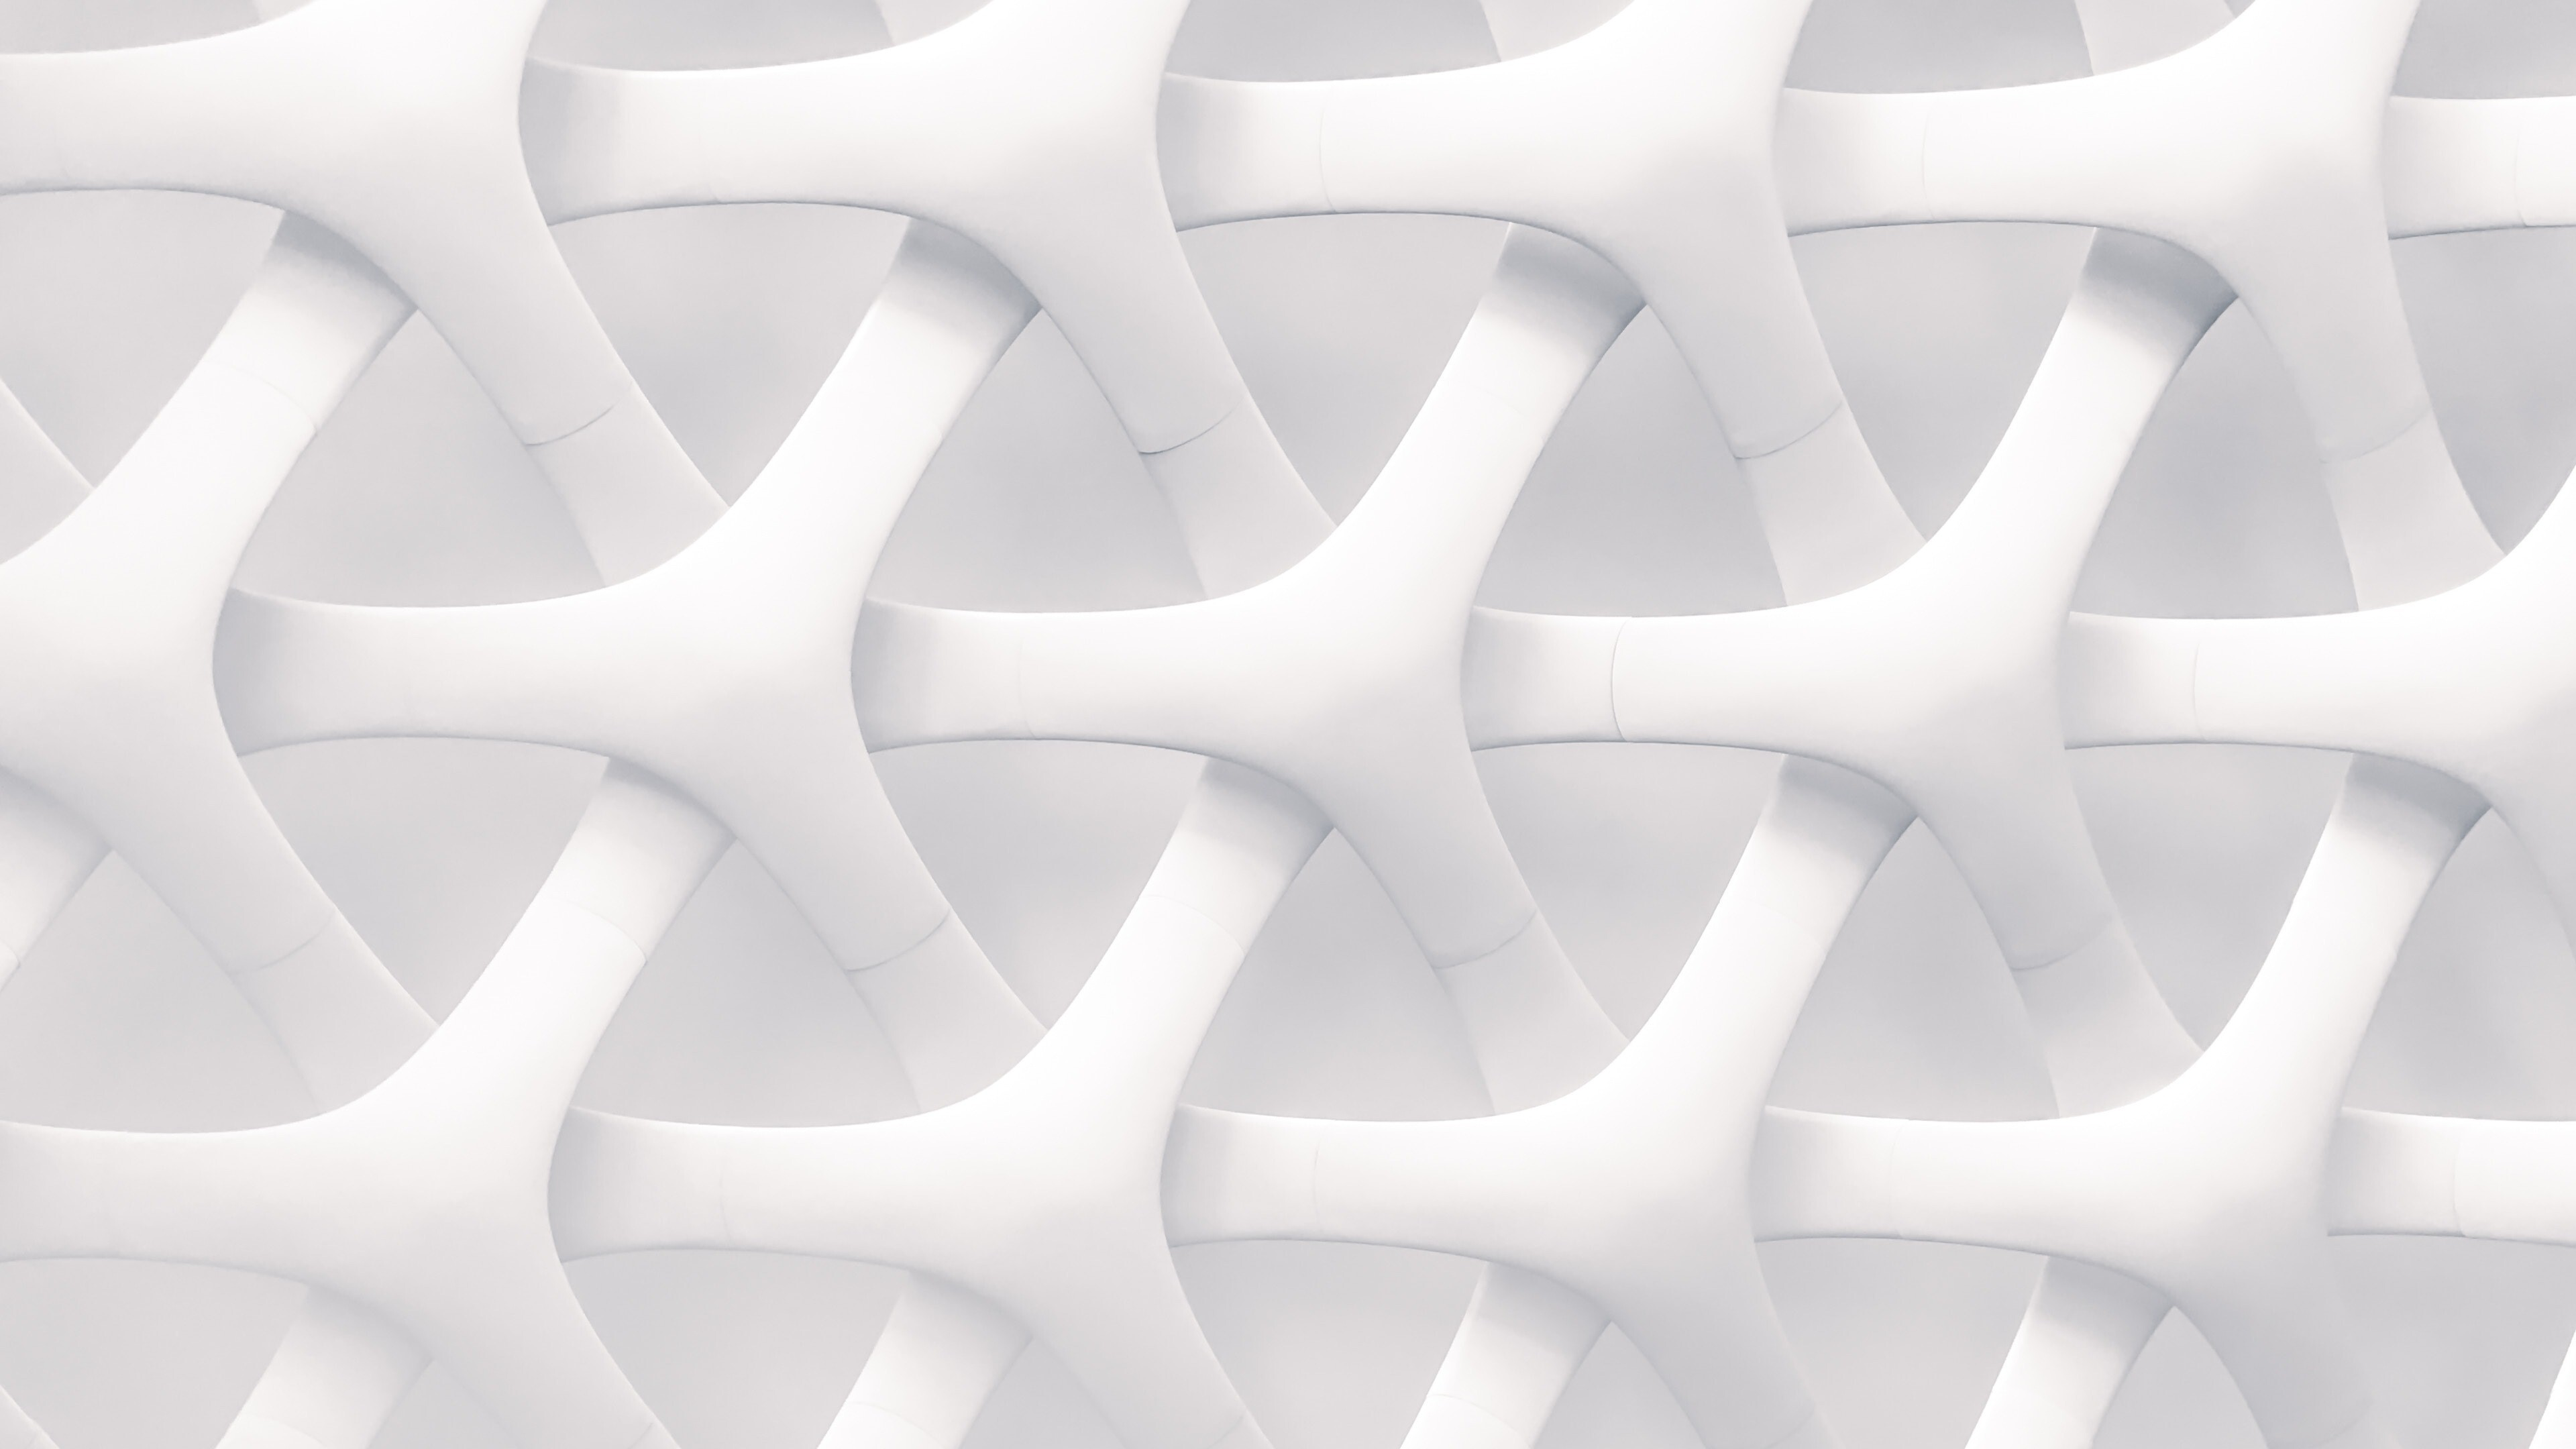 White texture pattern abstract 4k wallpaper hd wallpapers - White abstract background hd ...